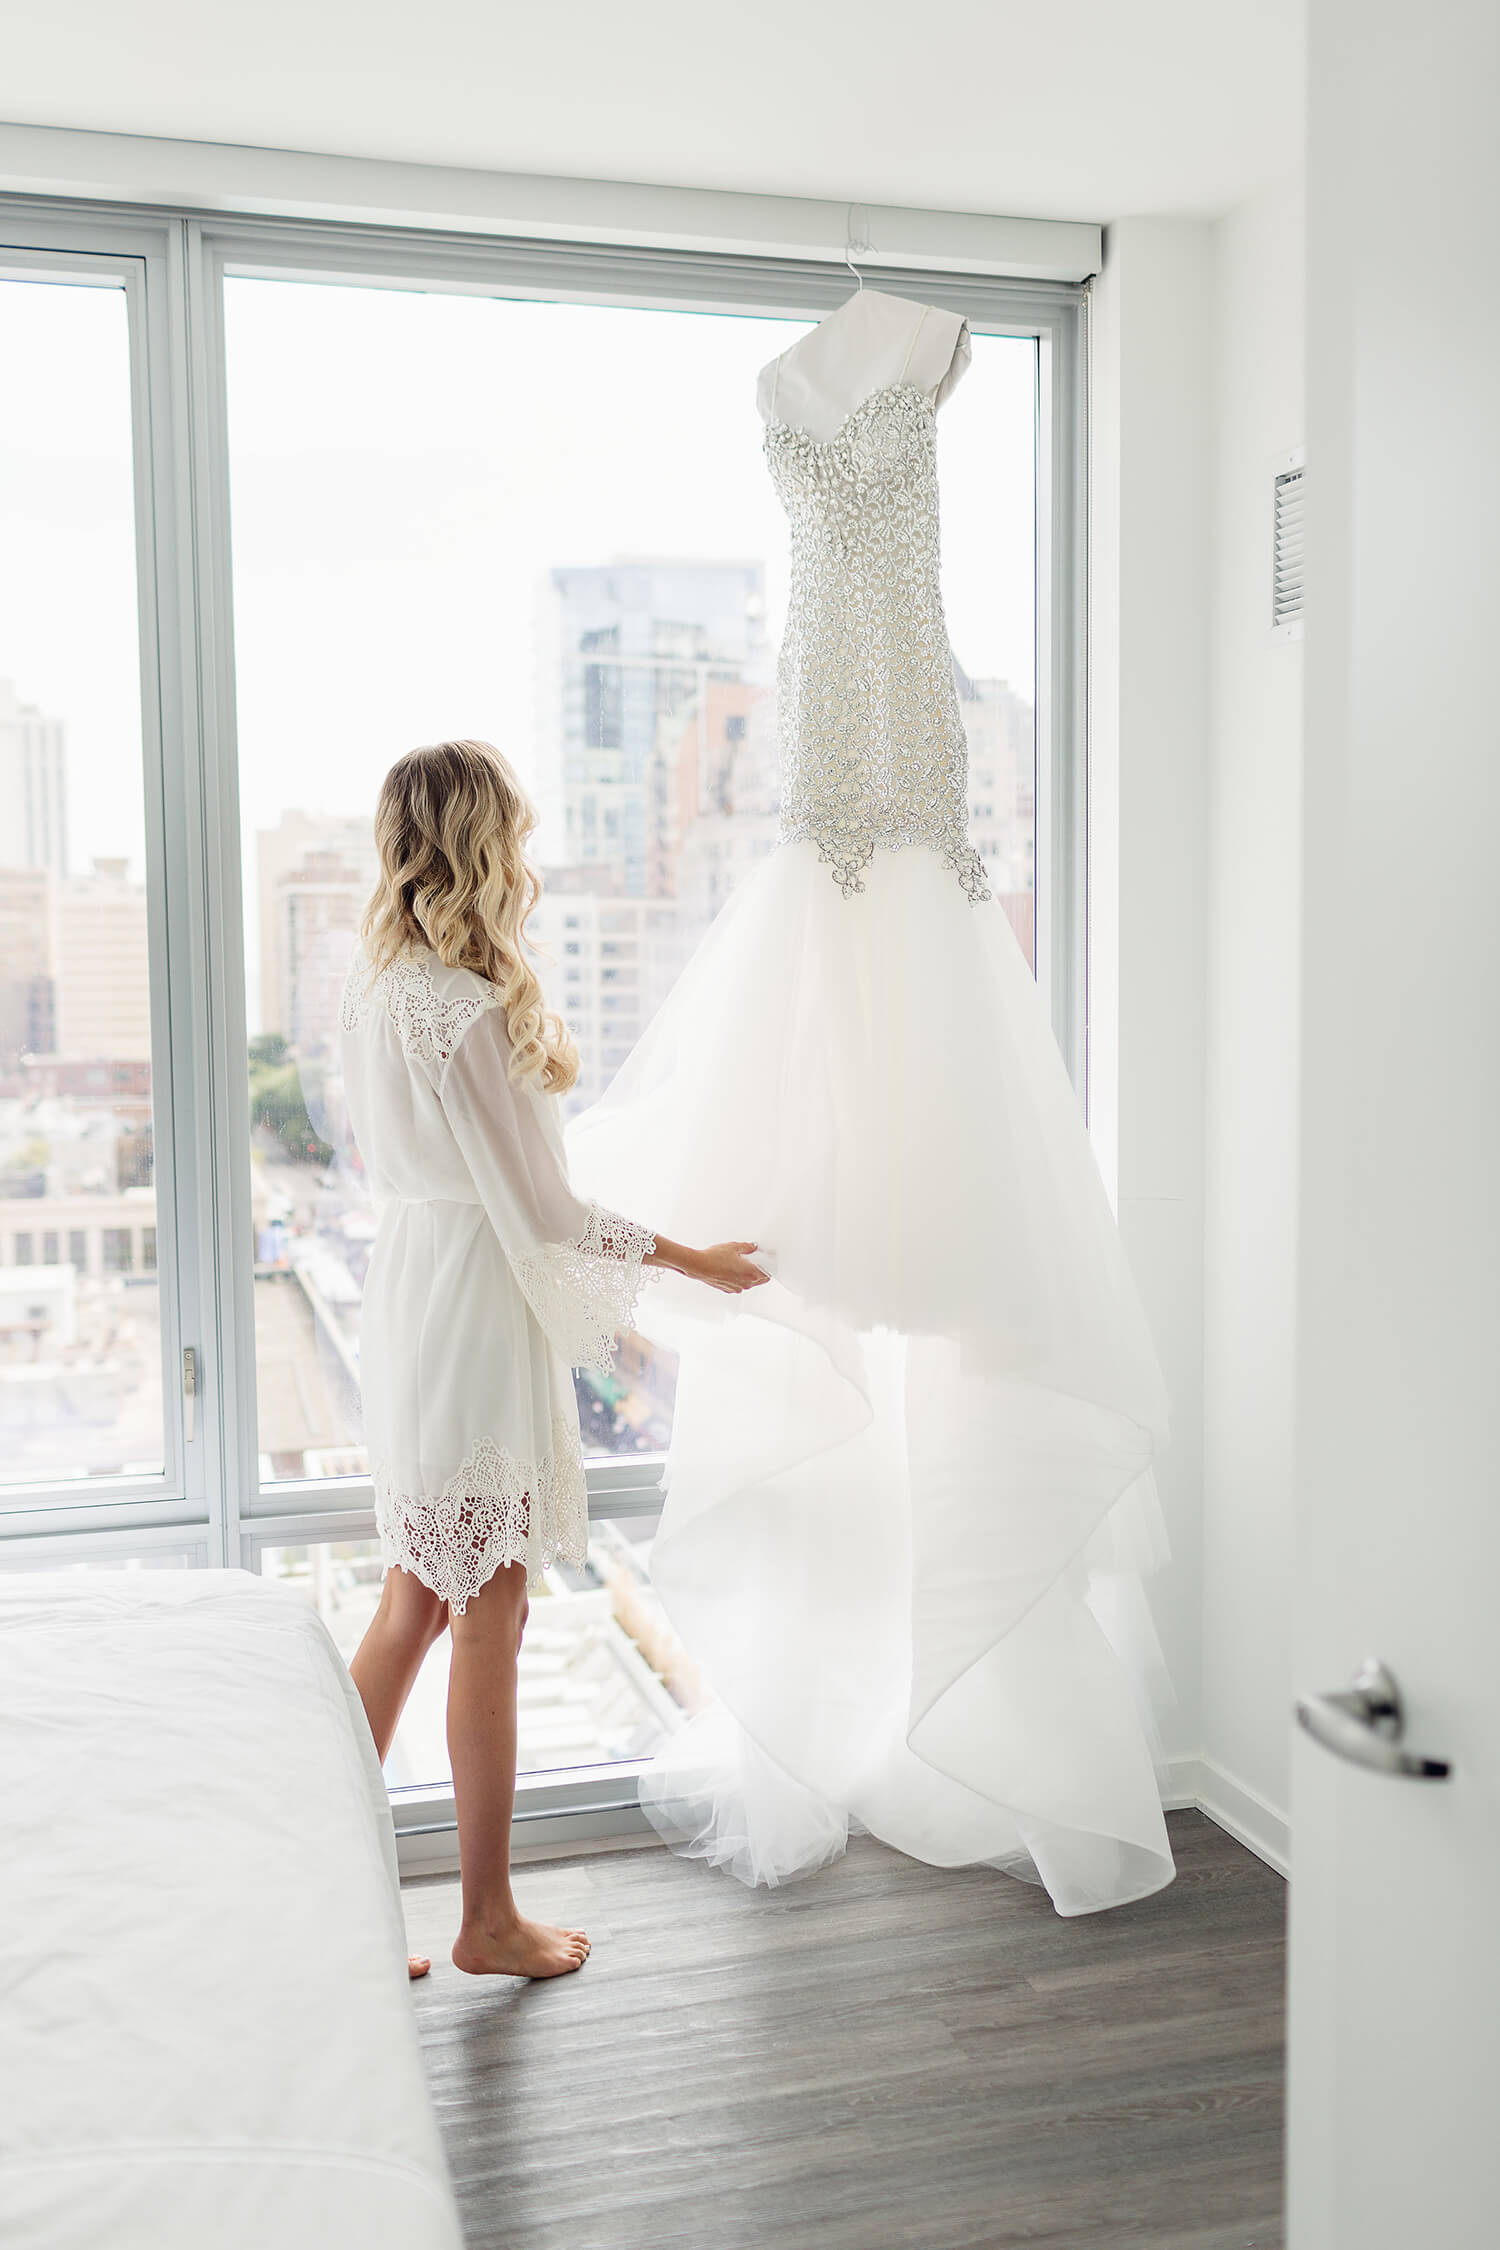 Carly cristman fashion lifestyle if you havent seen my latest seen my latest youtube video about my wedding and where ive been since then please go check it out fandeluxe Document